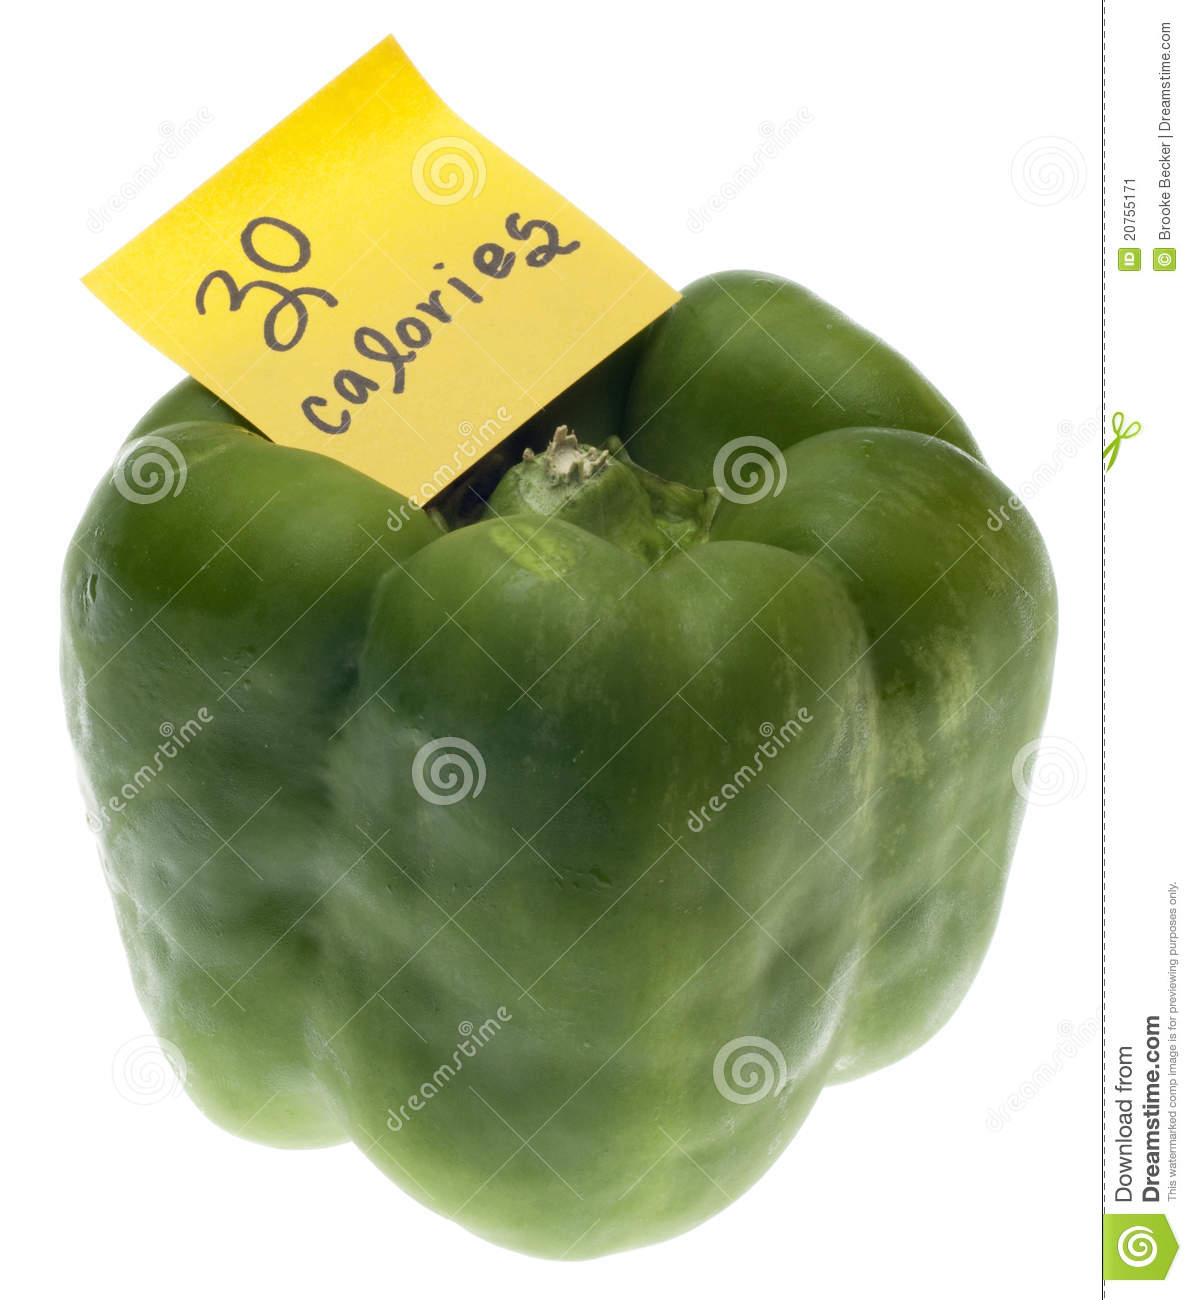 green bell pepper with 30 calories stock image - image of